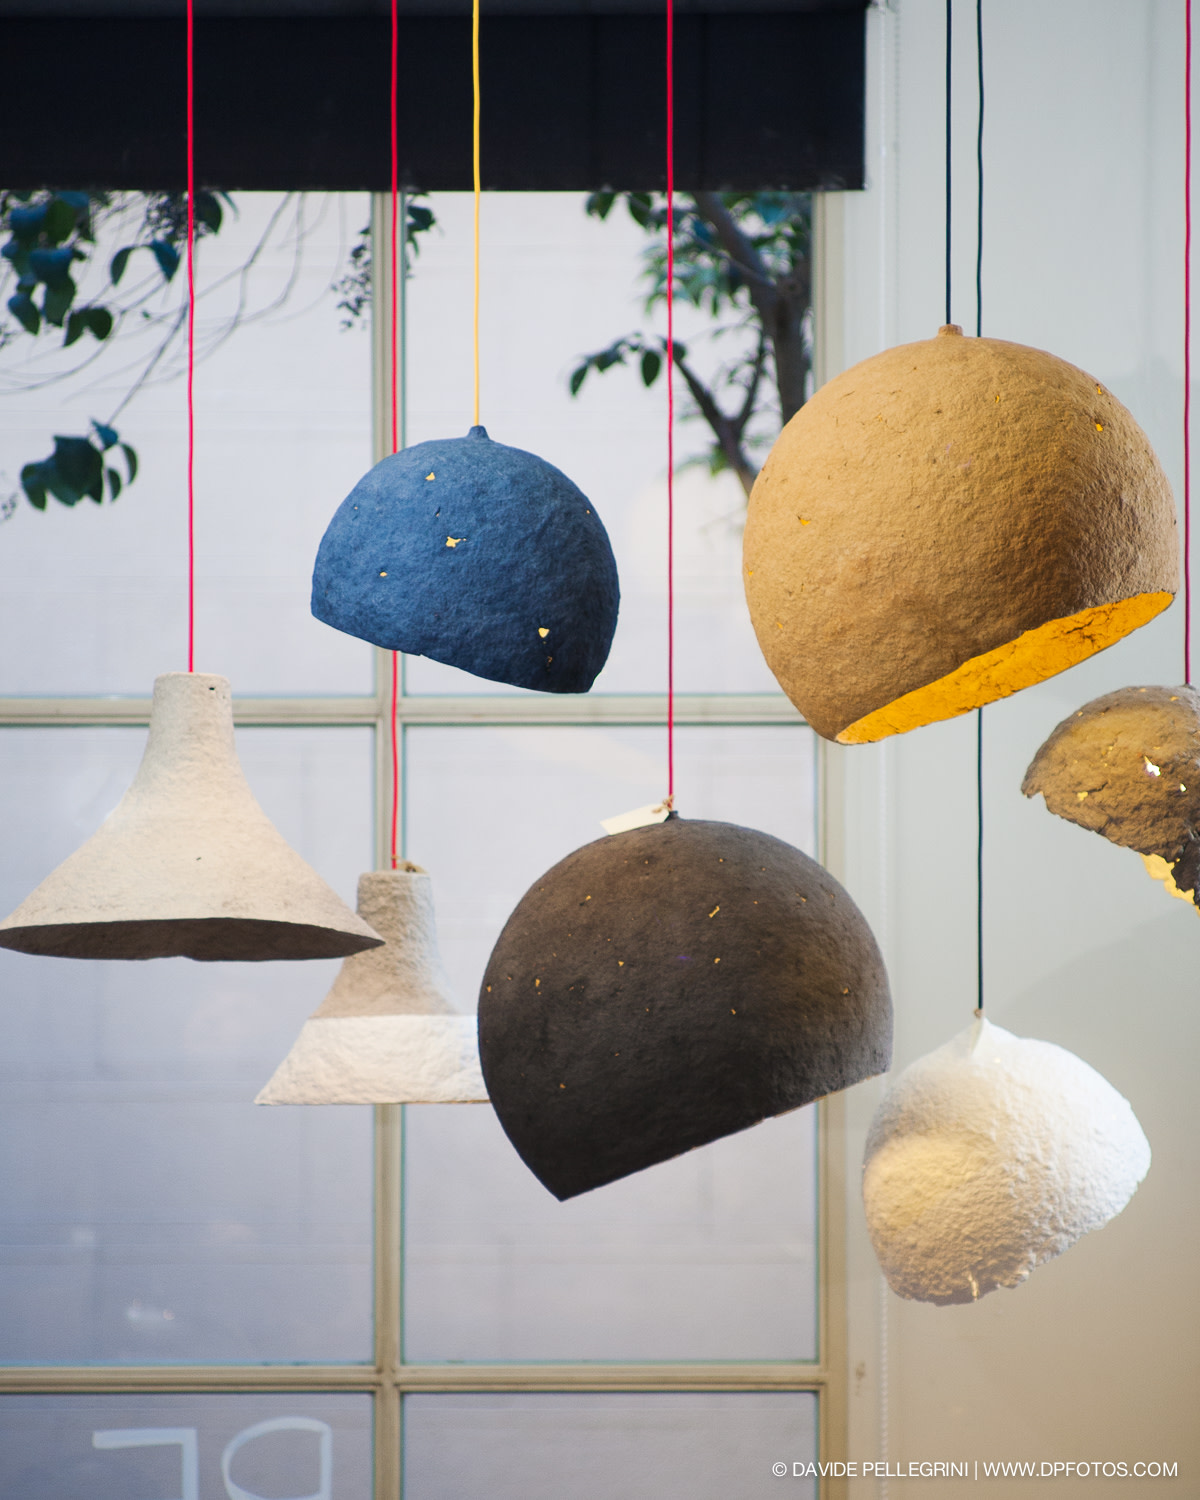 Crea-Re lamps in an exposition in Barcelona, Spain. Photo: Davide Pellegrini